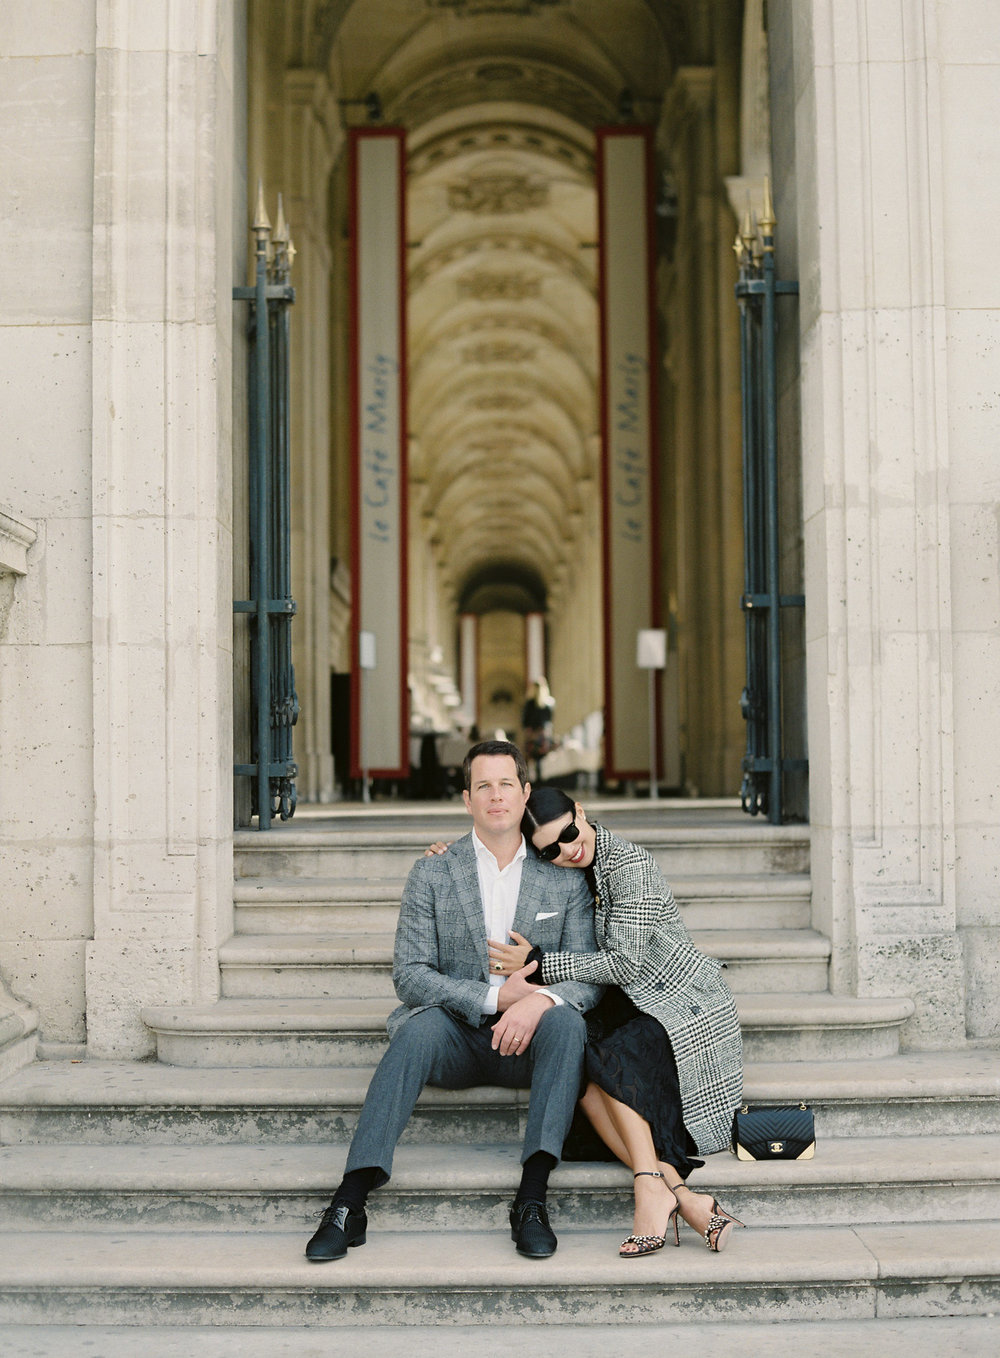 Paris engagement photography-Carrie King Photographer-10.jpg